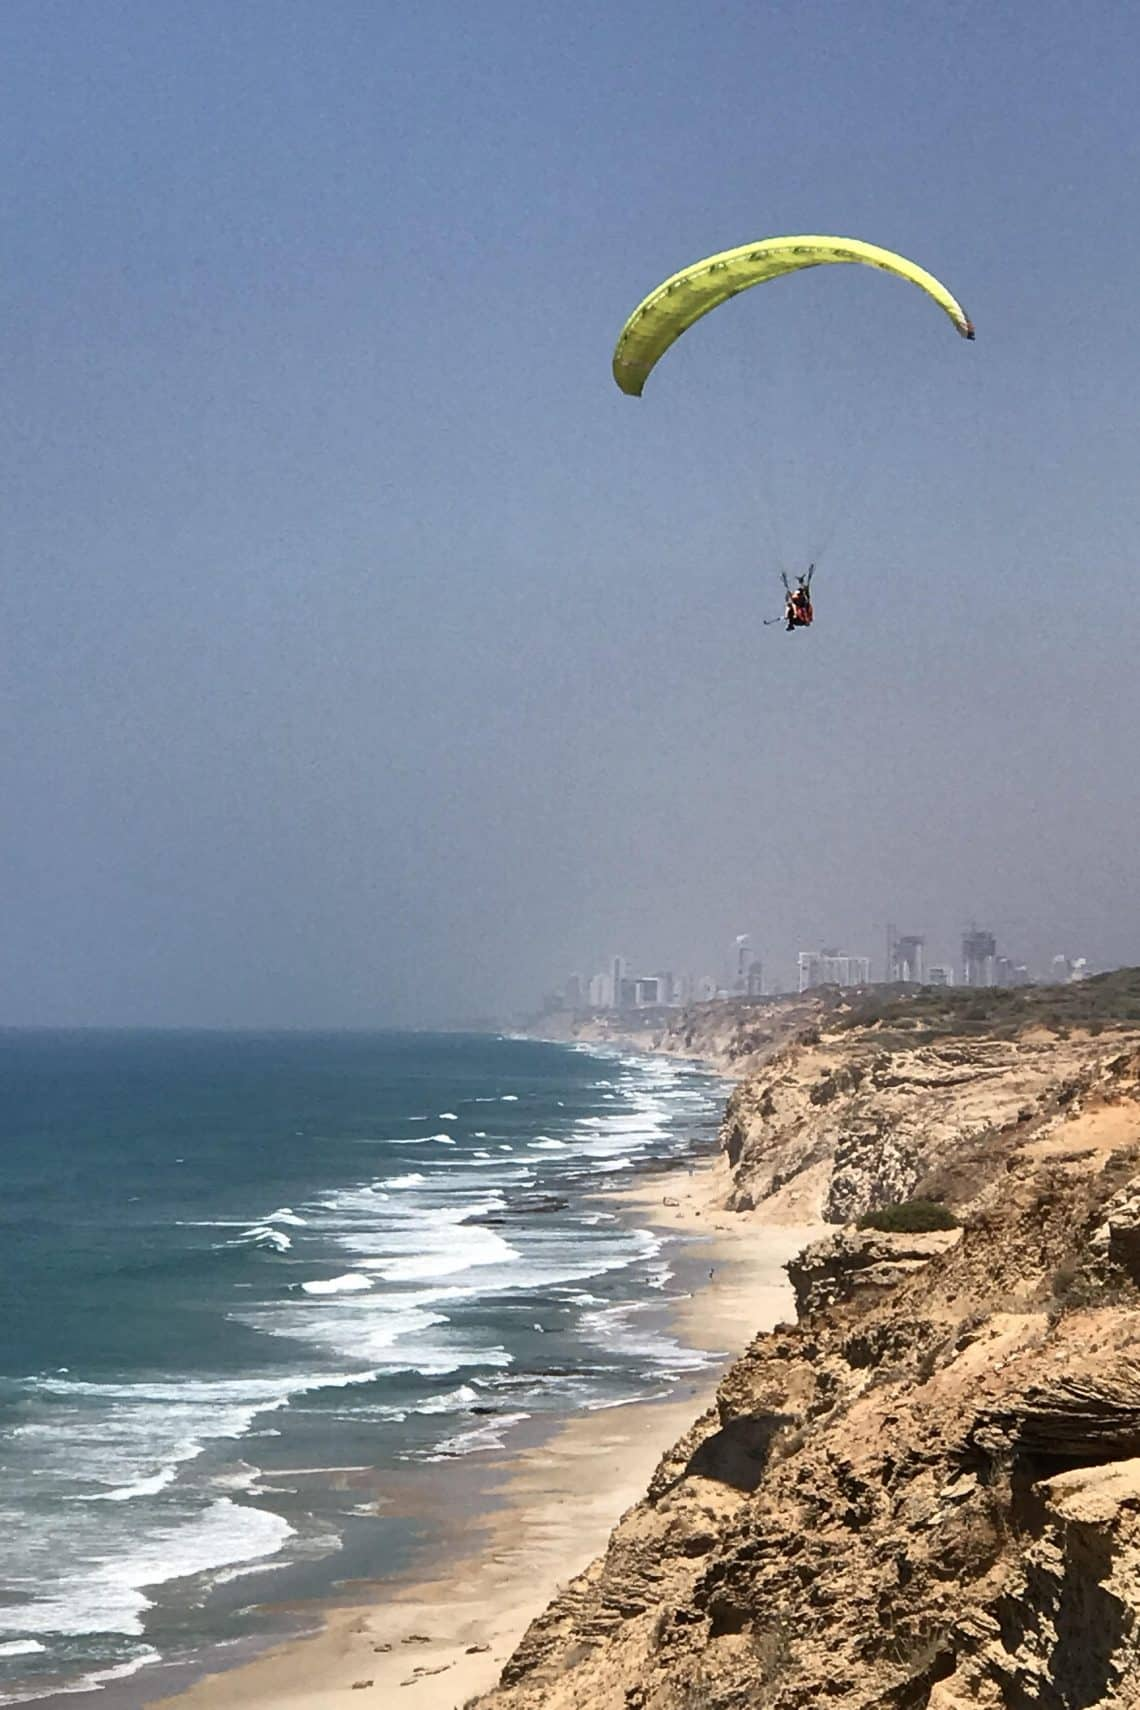 Paragliding over the Mediterranean Sea